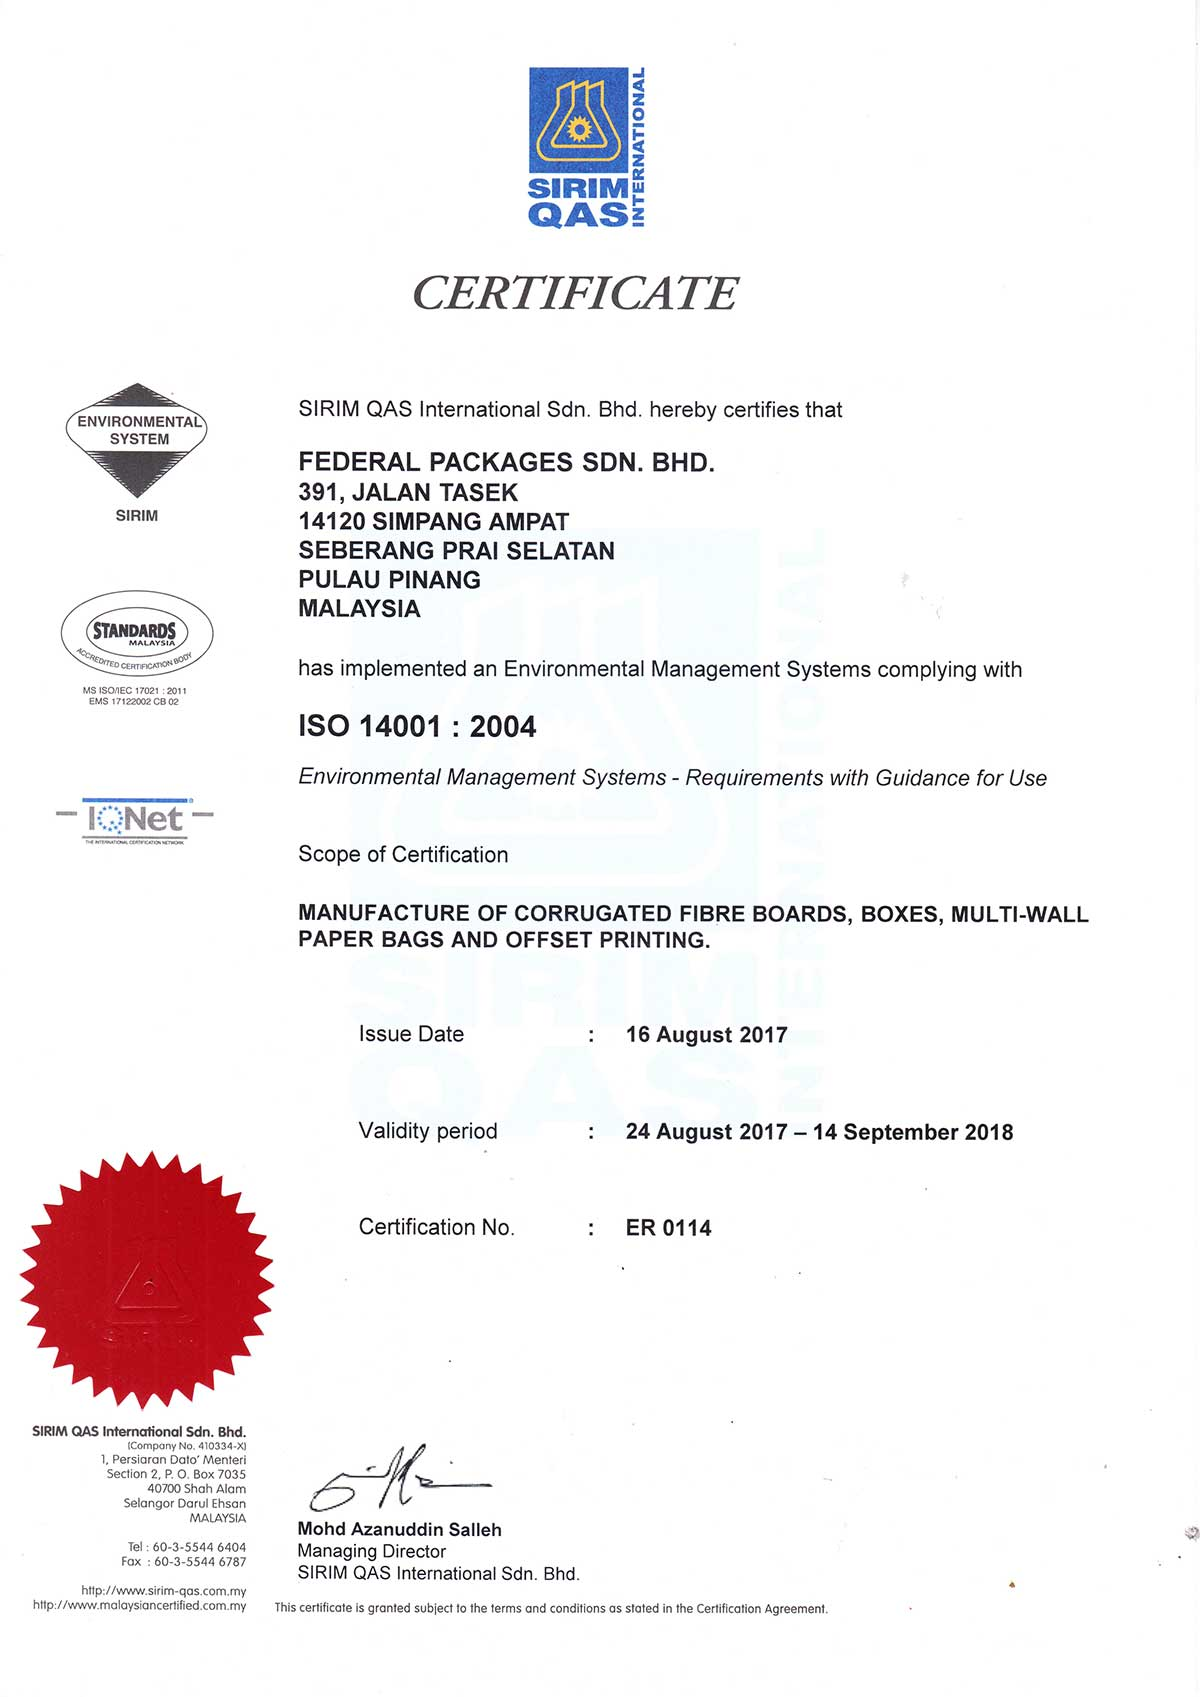 ISO-14001-2004-Federal-Packaging-Sdn-Bhd